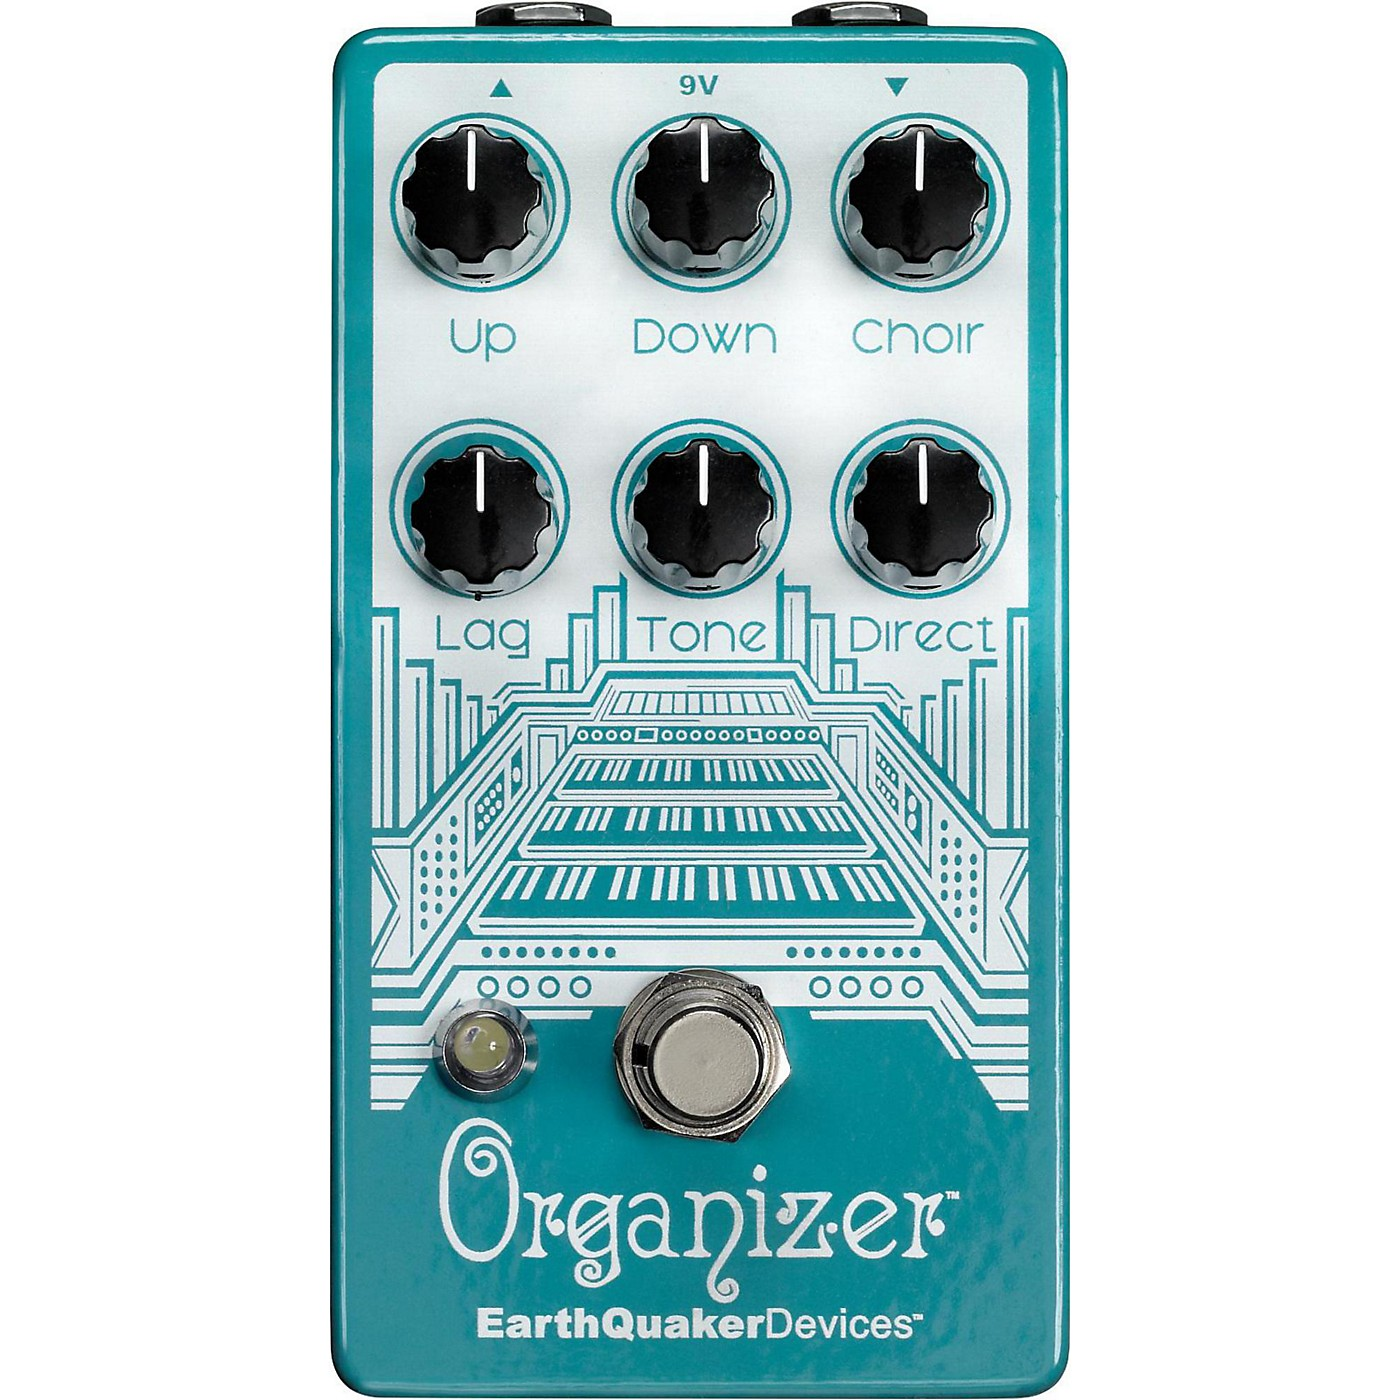 EarthQuaker Devices Organizer V2 Pedal thumbnail